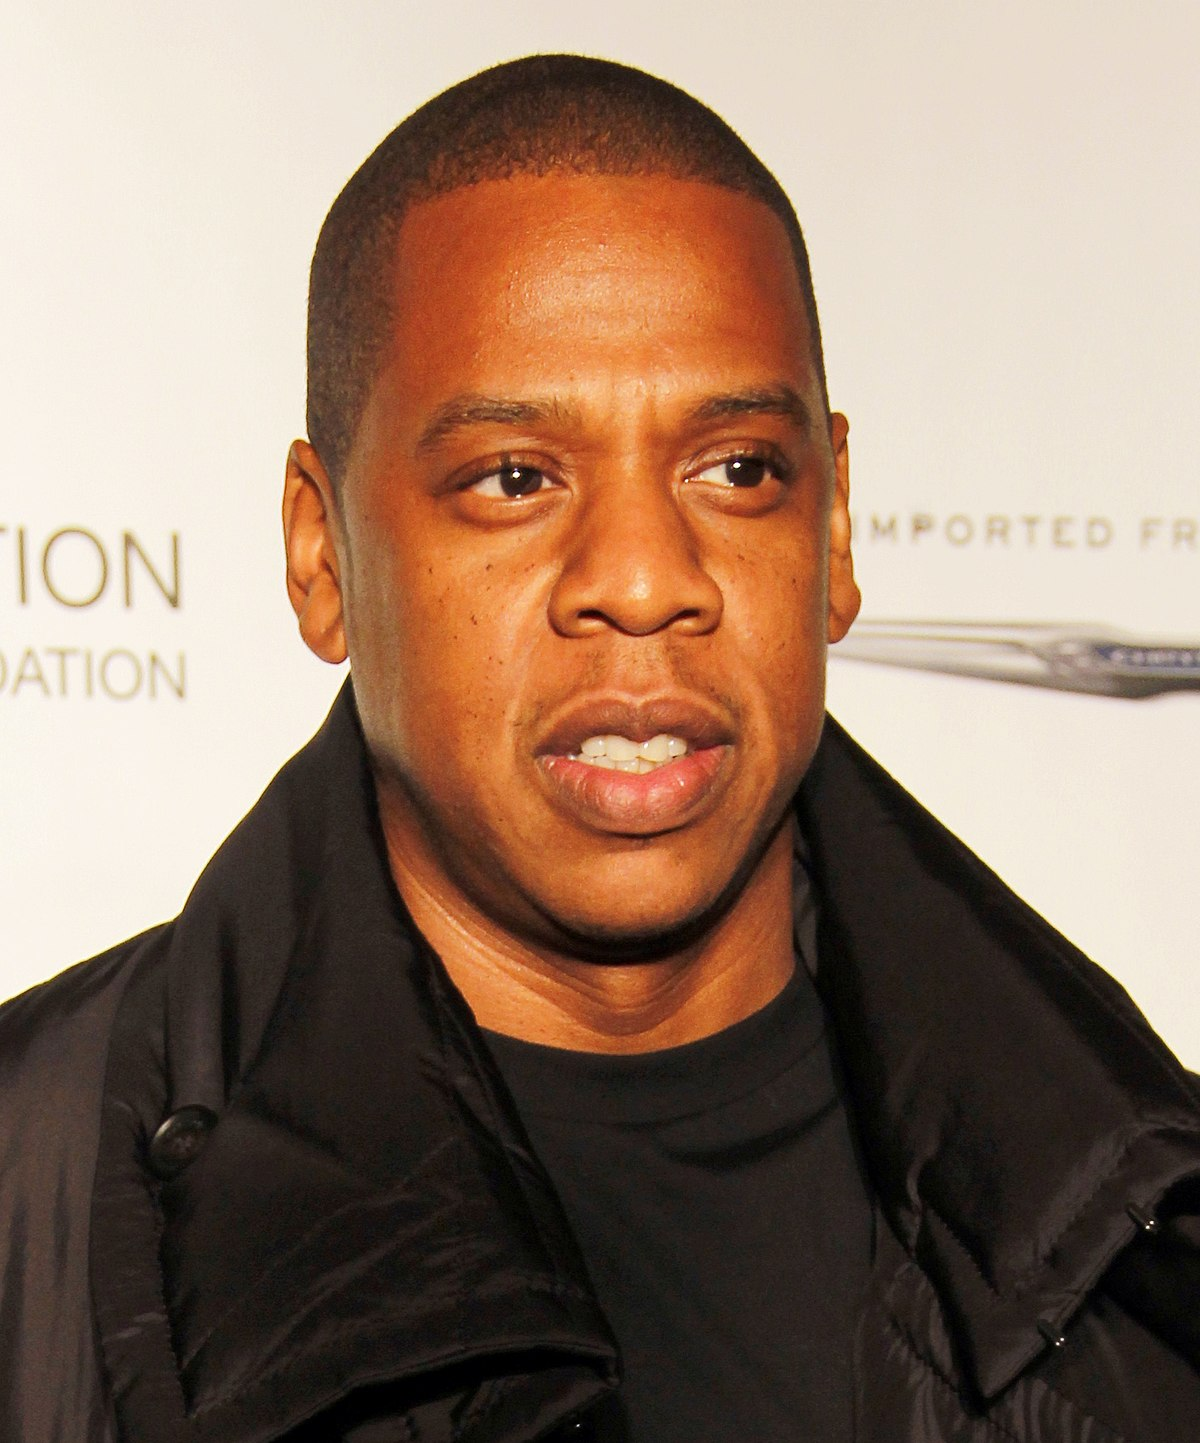 1200px-Jay-Z_%40_Shawn_%27Jay-Z%27_Carter_Foundation_Carnival_%28crop_2%29.jpg